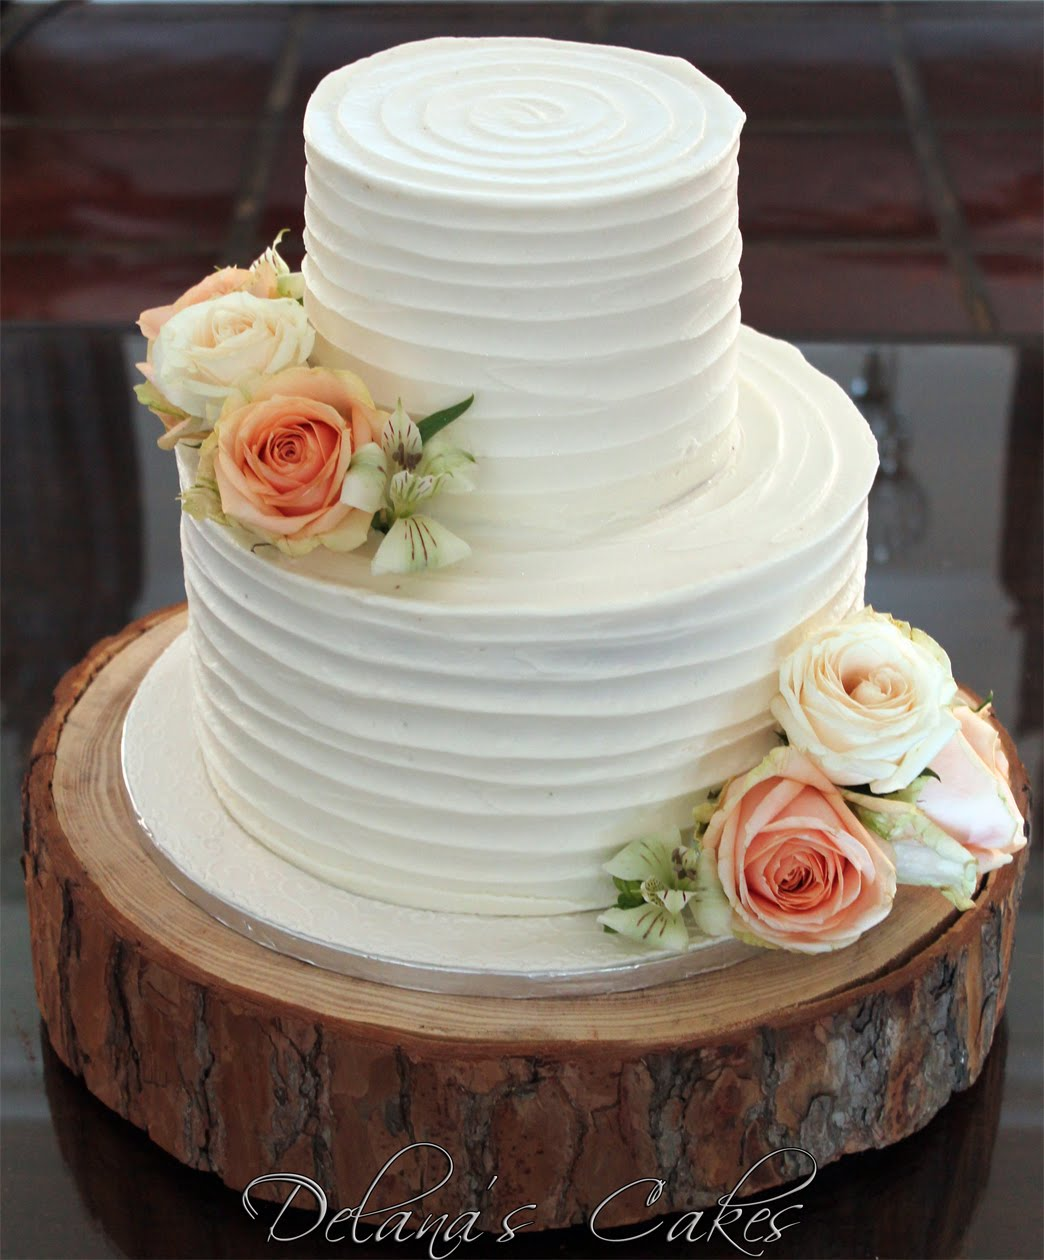 Delana\'s Cakes: Textured Iced Cake with Peach Roses